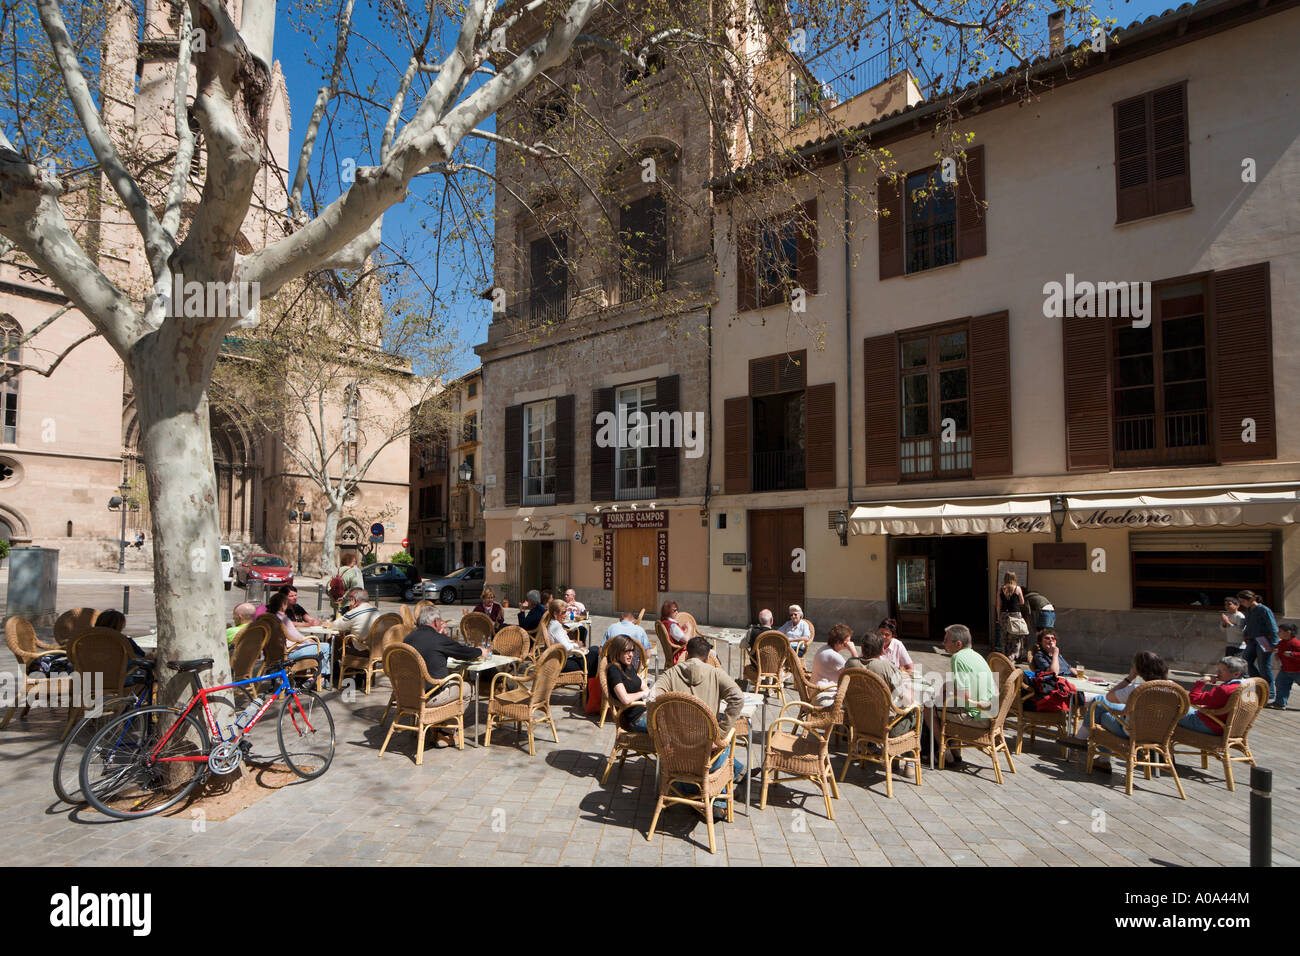 Sidewalk cafe in Placa Santa Eulalia, Historic Centre,  Palma, Mallorca, Balearic Islands, Spain - Stock Image